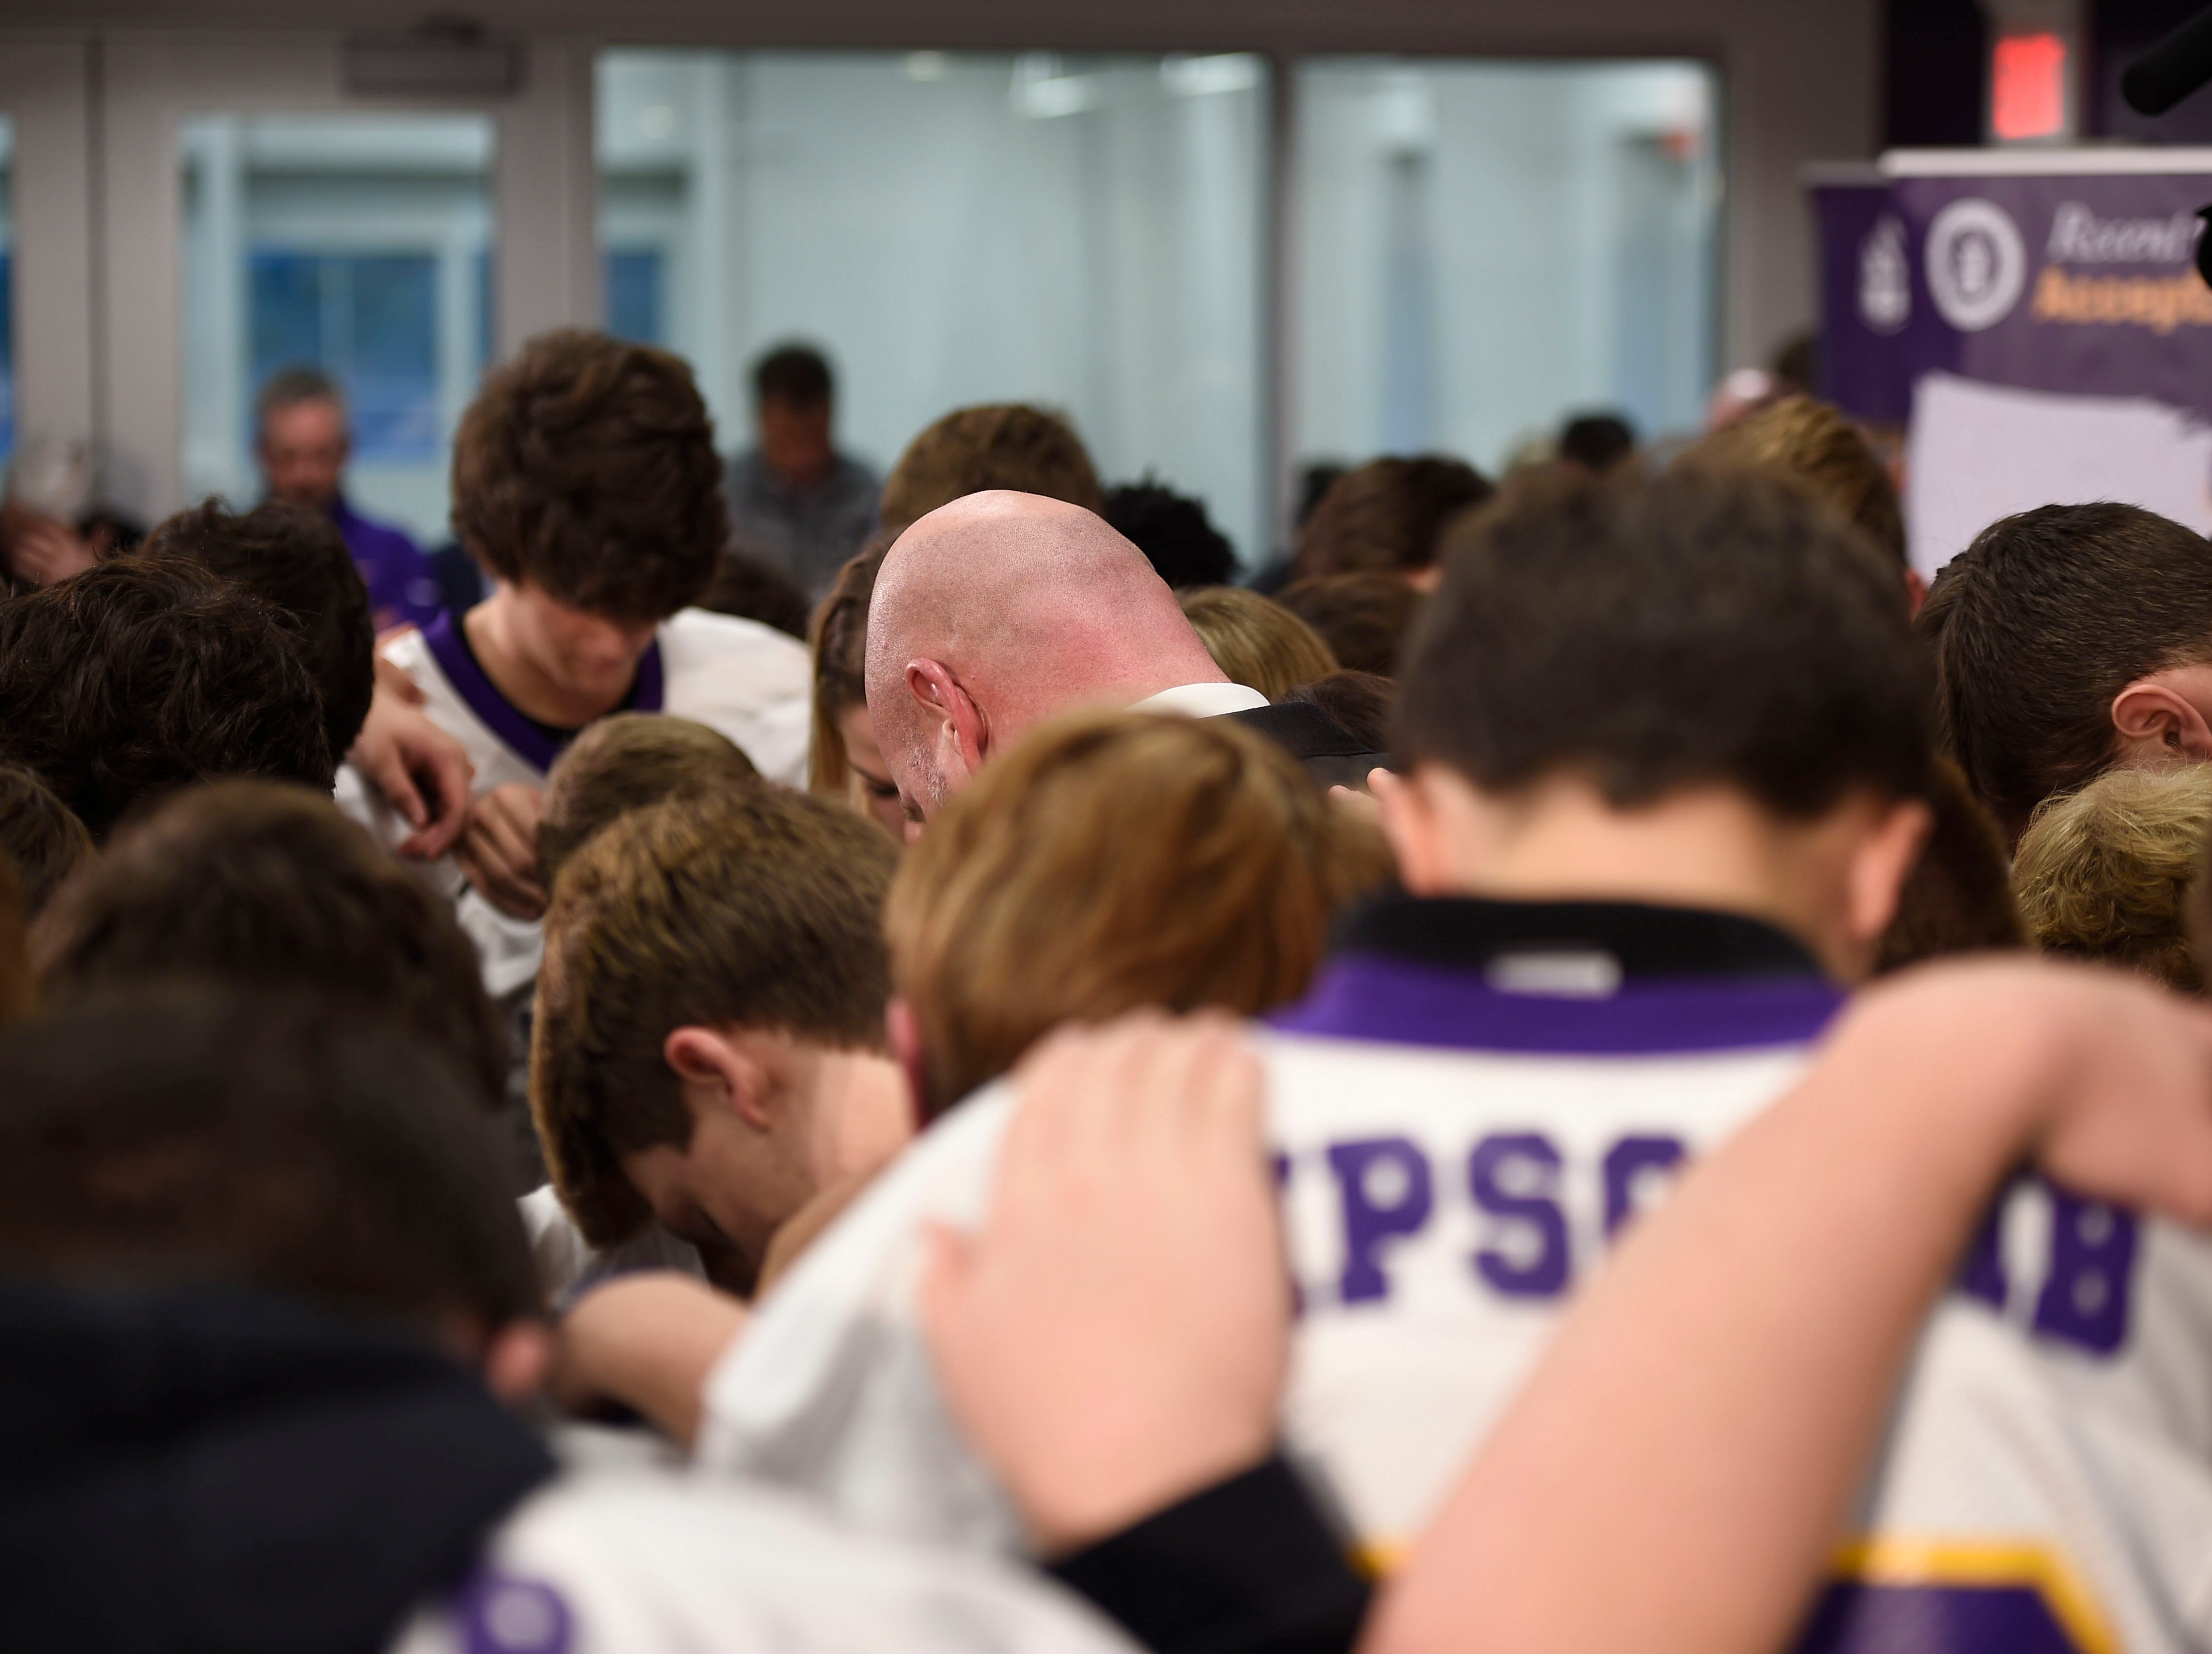 The Lipscomb Academy football team surrounds new head coach Trent Dilfer and his family for a post press conference prayer.